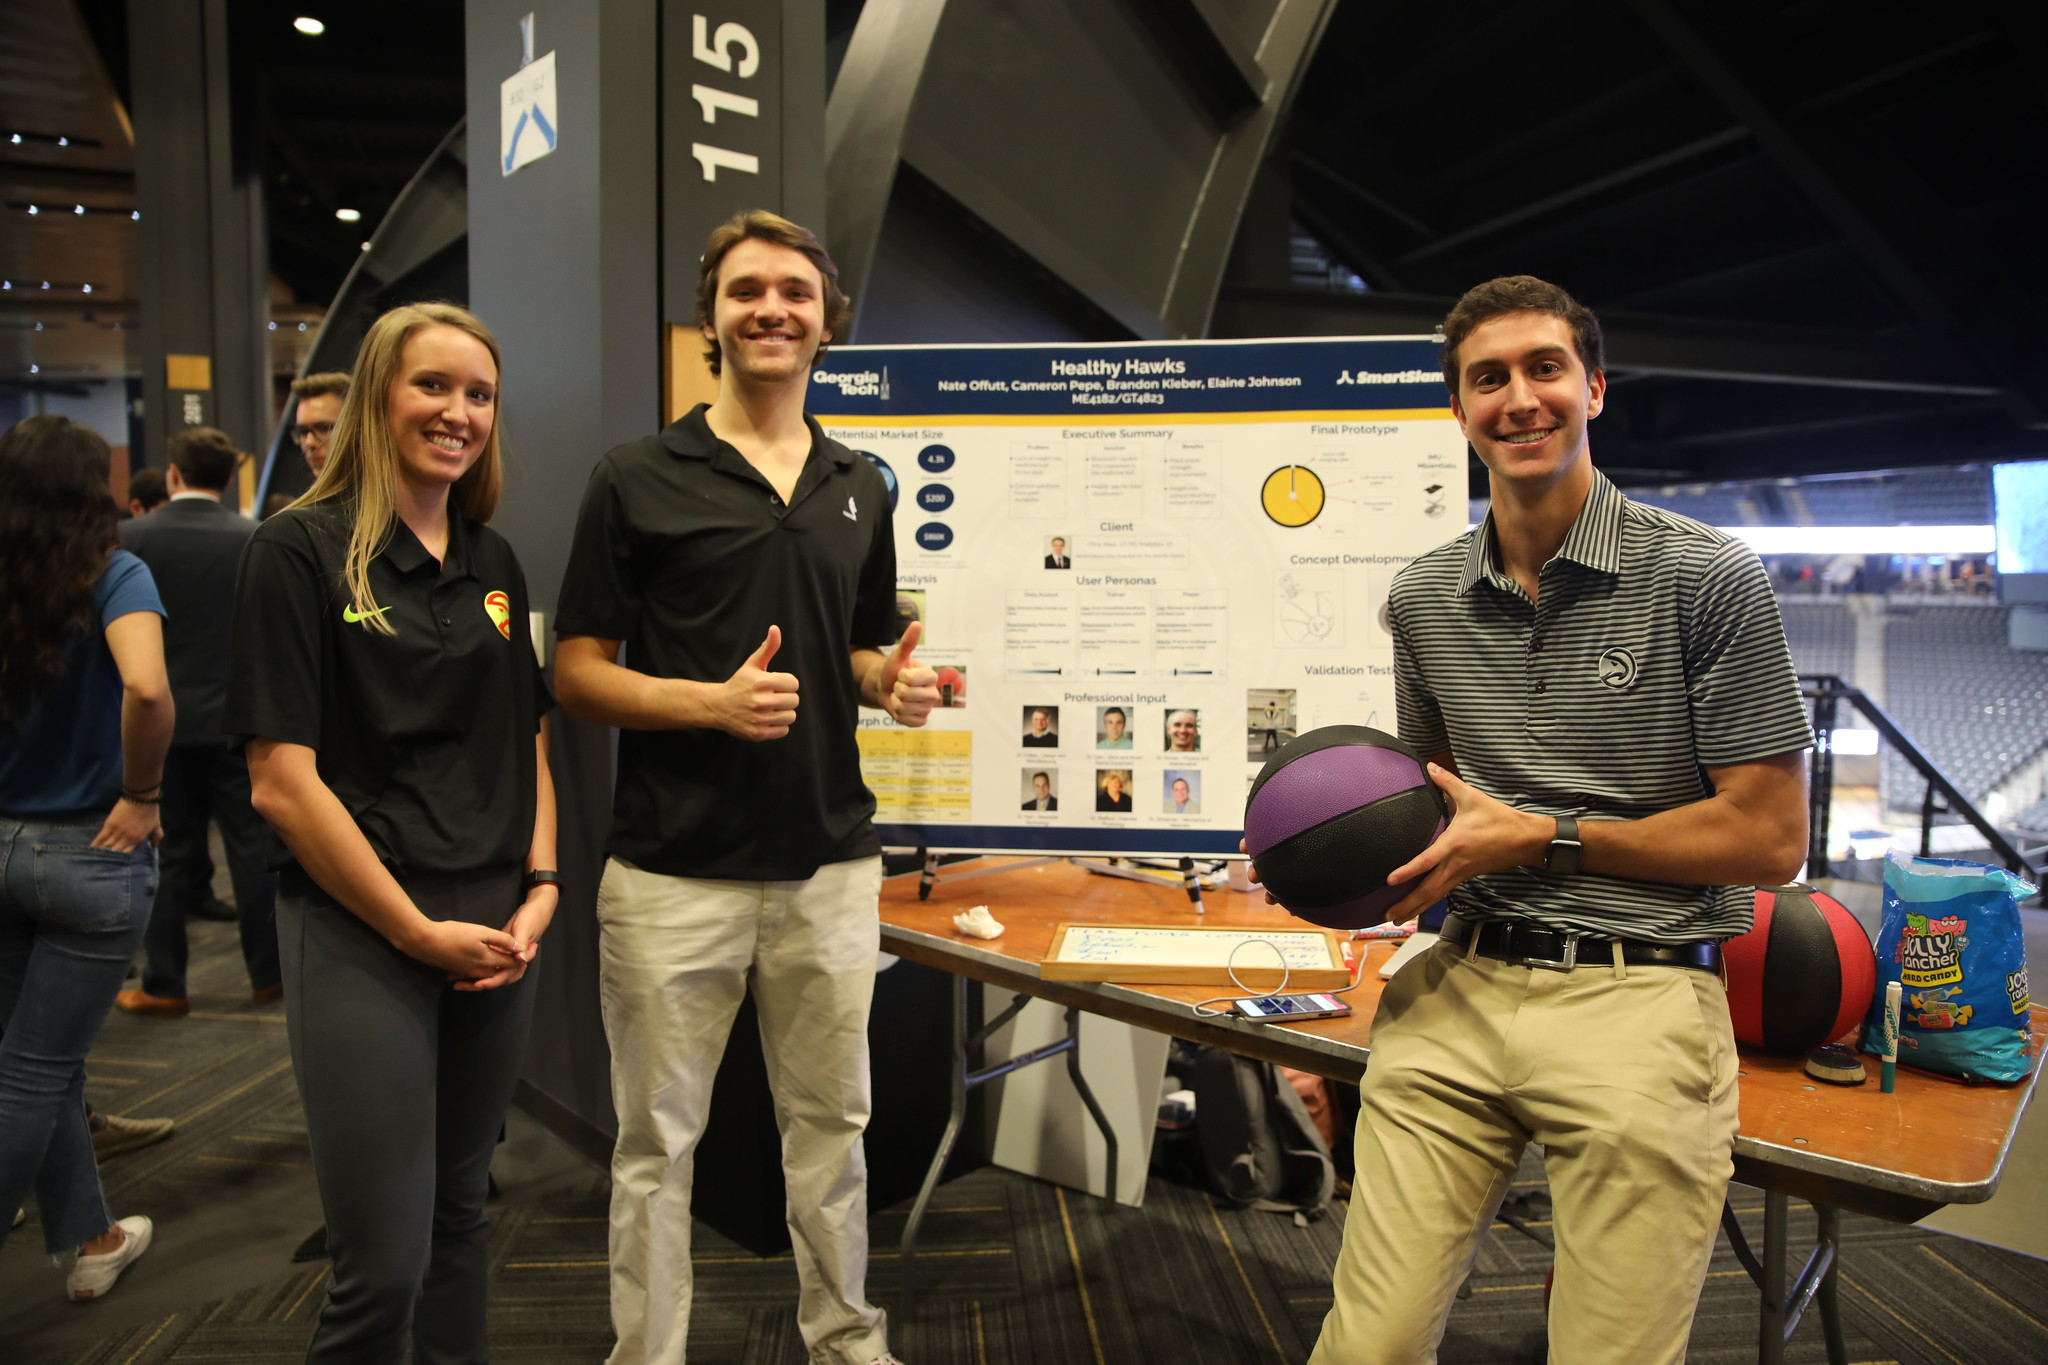 HealthySlam with their redesigned smart medicine ball